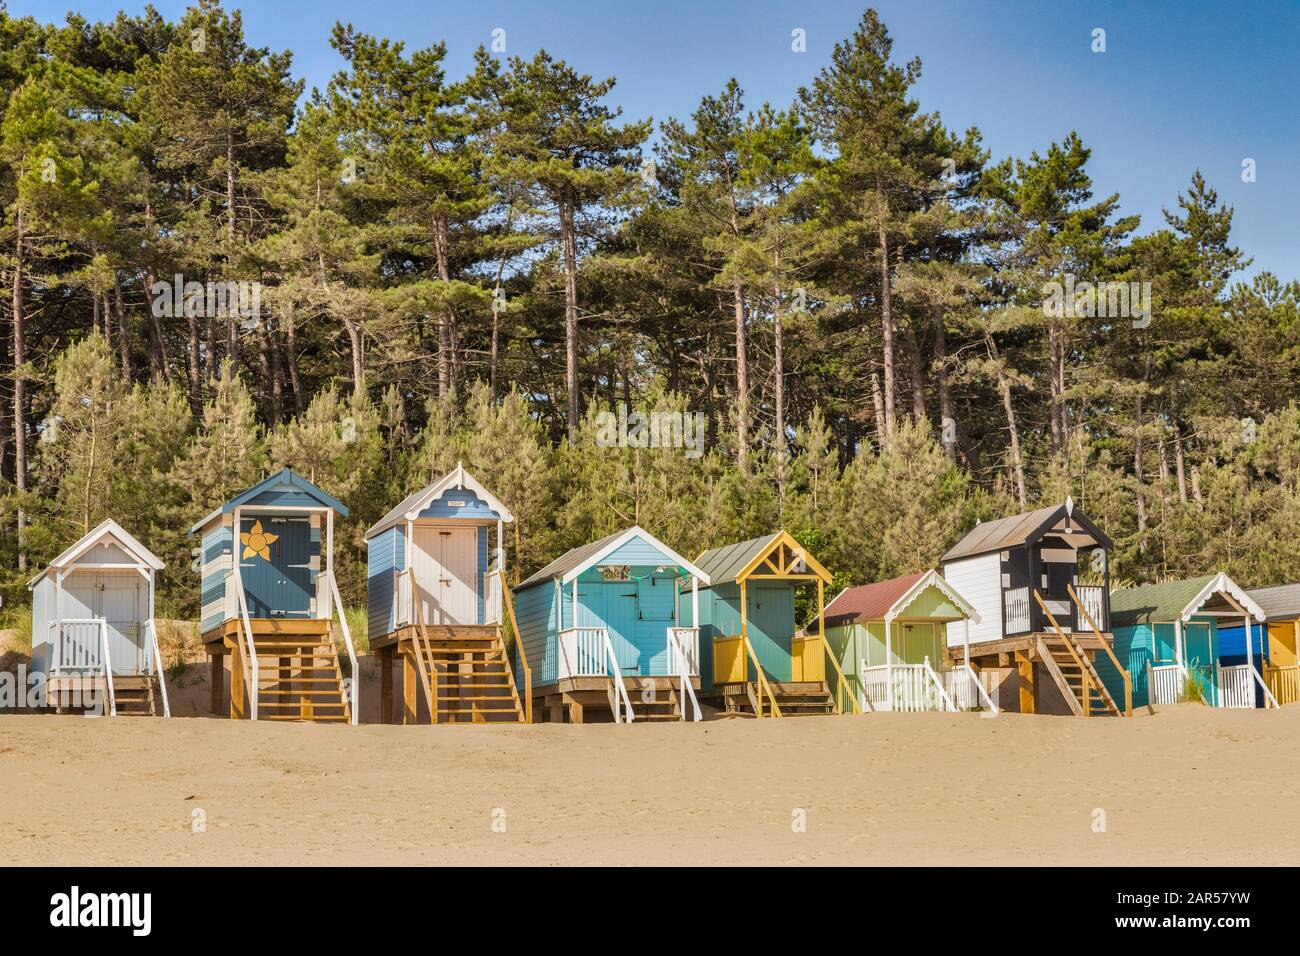 29 June 2019: Wells-Next-The-Sea, Norfolk, England, UK - Bathing huts on the beach, pine trees behind. Stock Photo